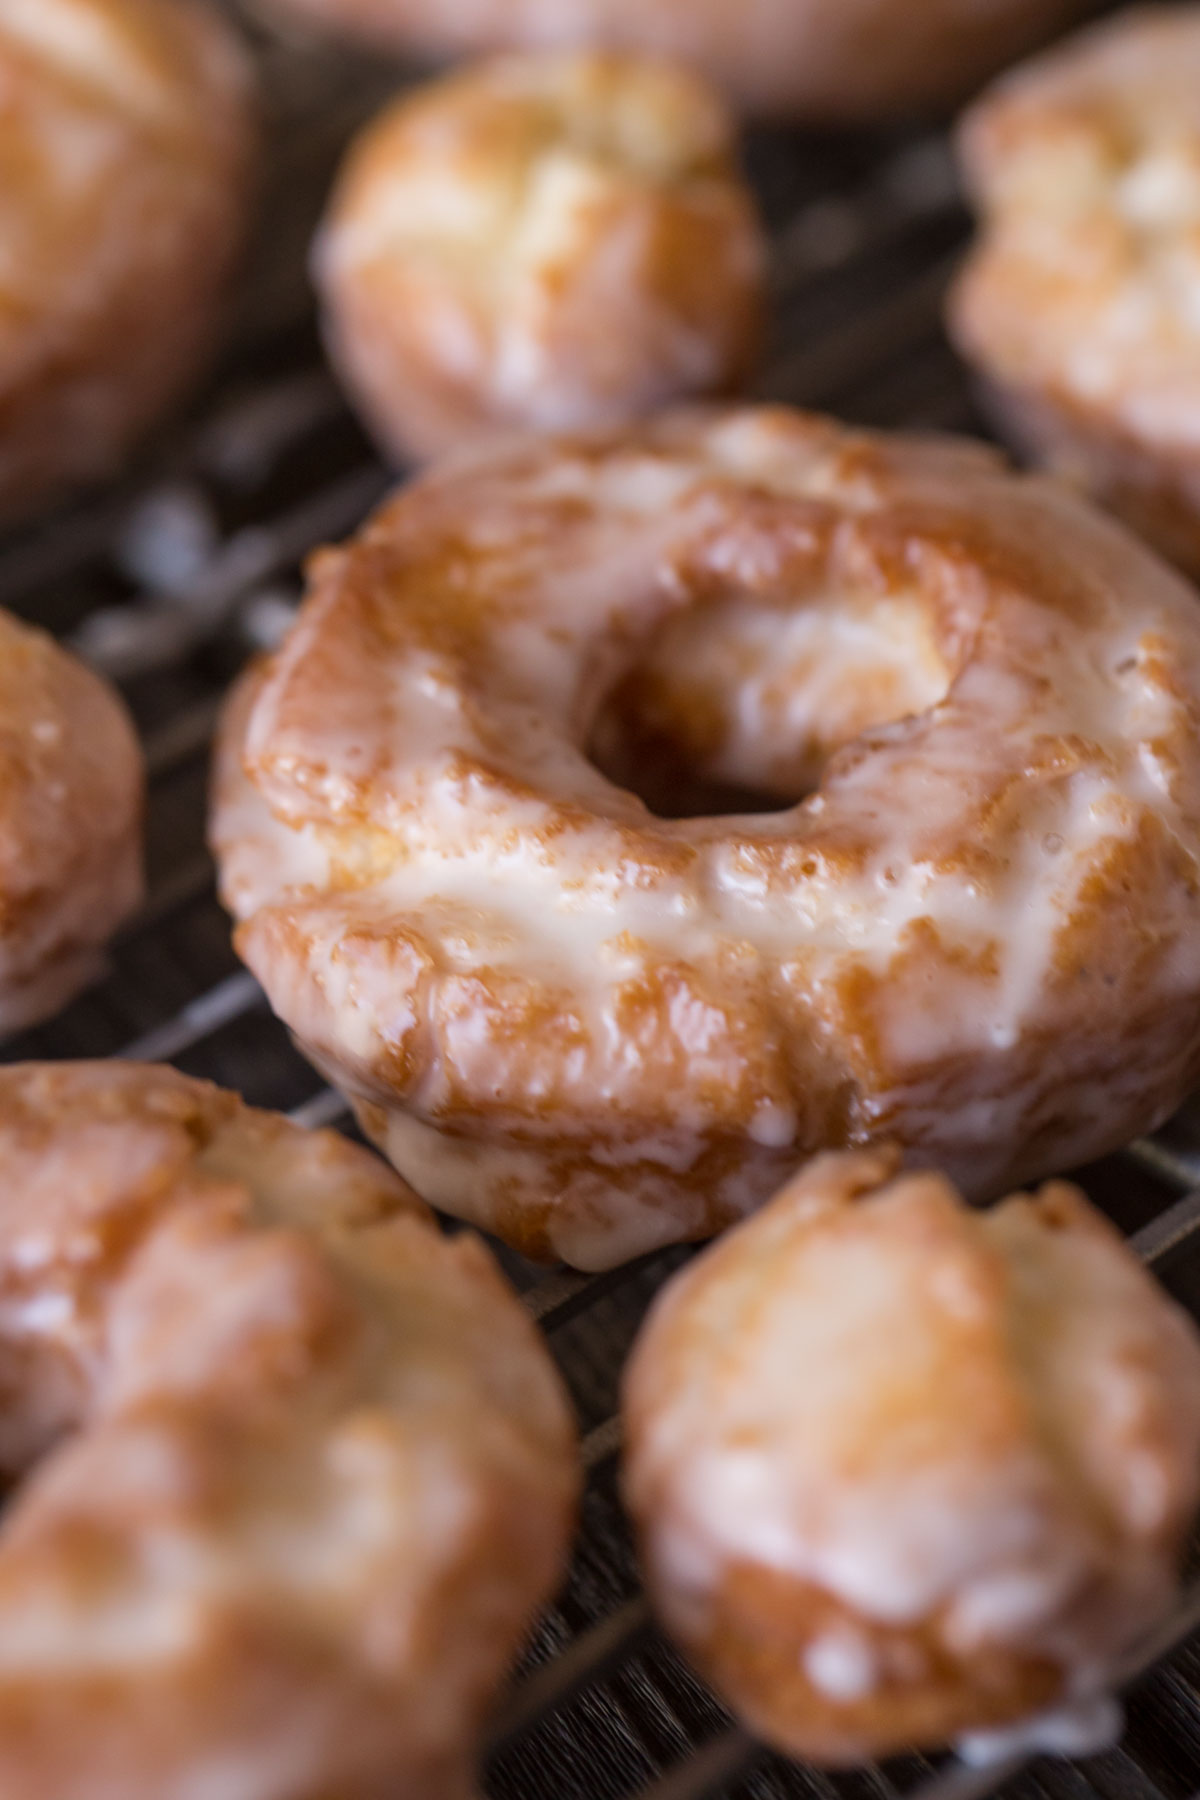 Close up view of an Old Fashioned Buttermilk Donut on a baking rack.